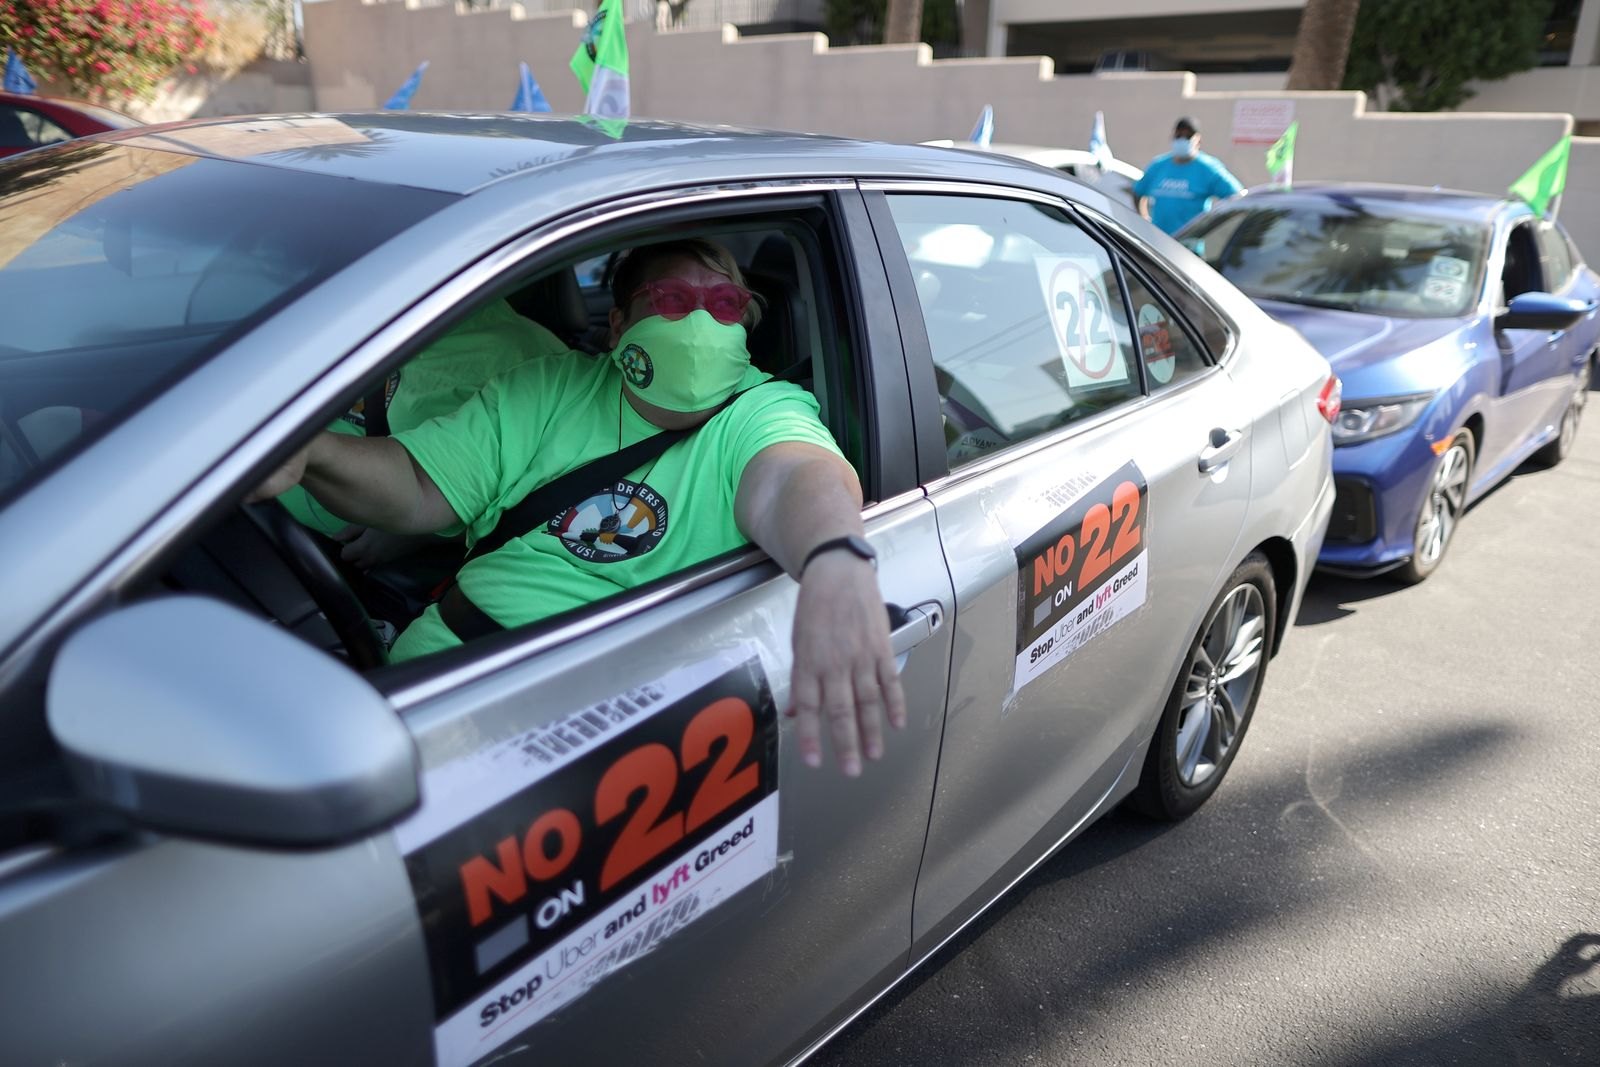 FILE PHOTO: Tammie Jean Lane, 61, joins a protest by Uber and Lyft rideshare drivers against California Proposition 22 in Los Angeles